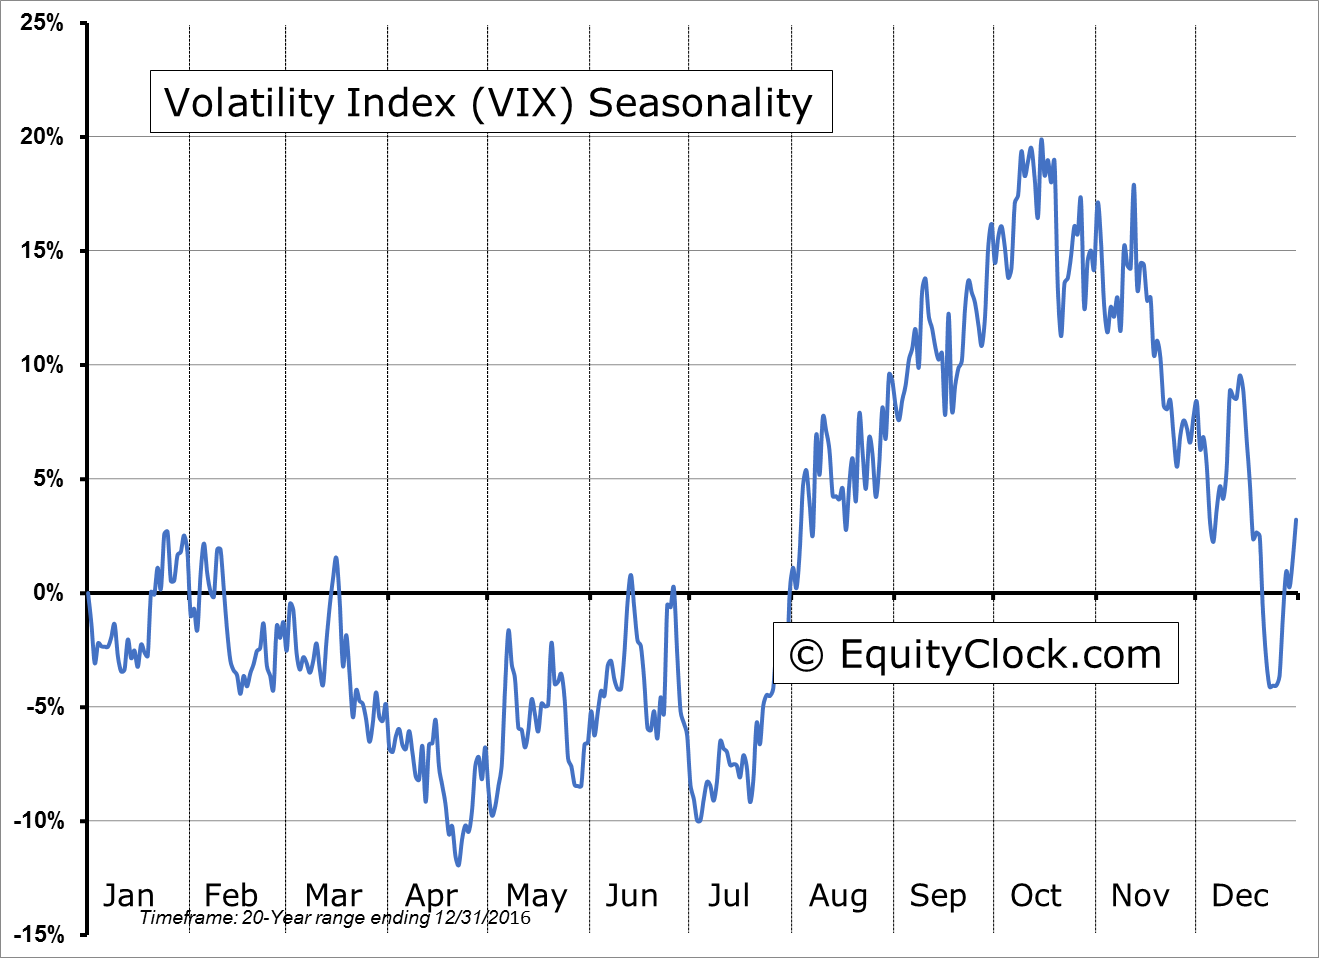 http://charts.equityclock.com/seasonal_charts/indexes/VIX.PNG